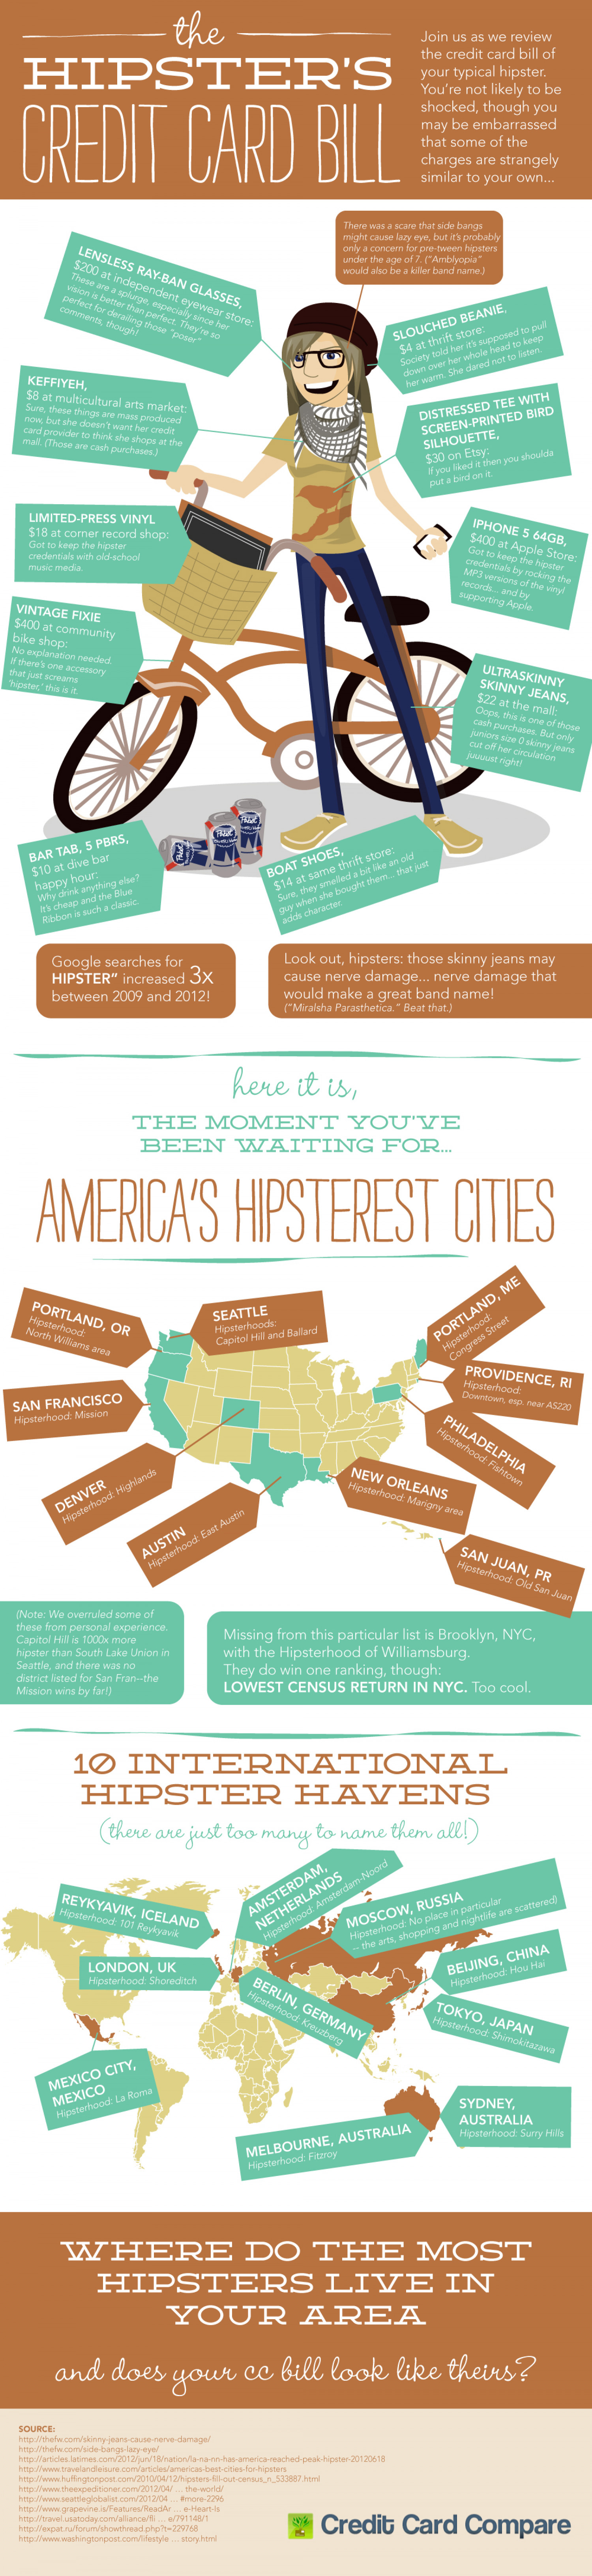 The Hipster's Credit Card Bill Infographic